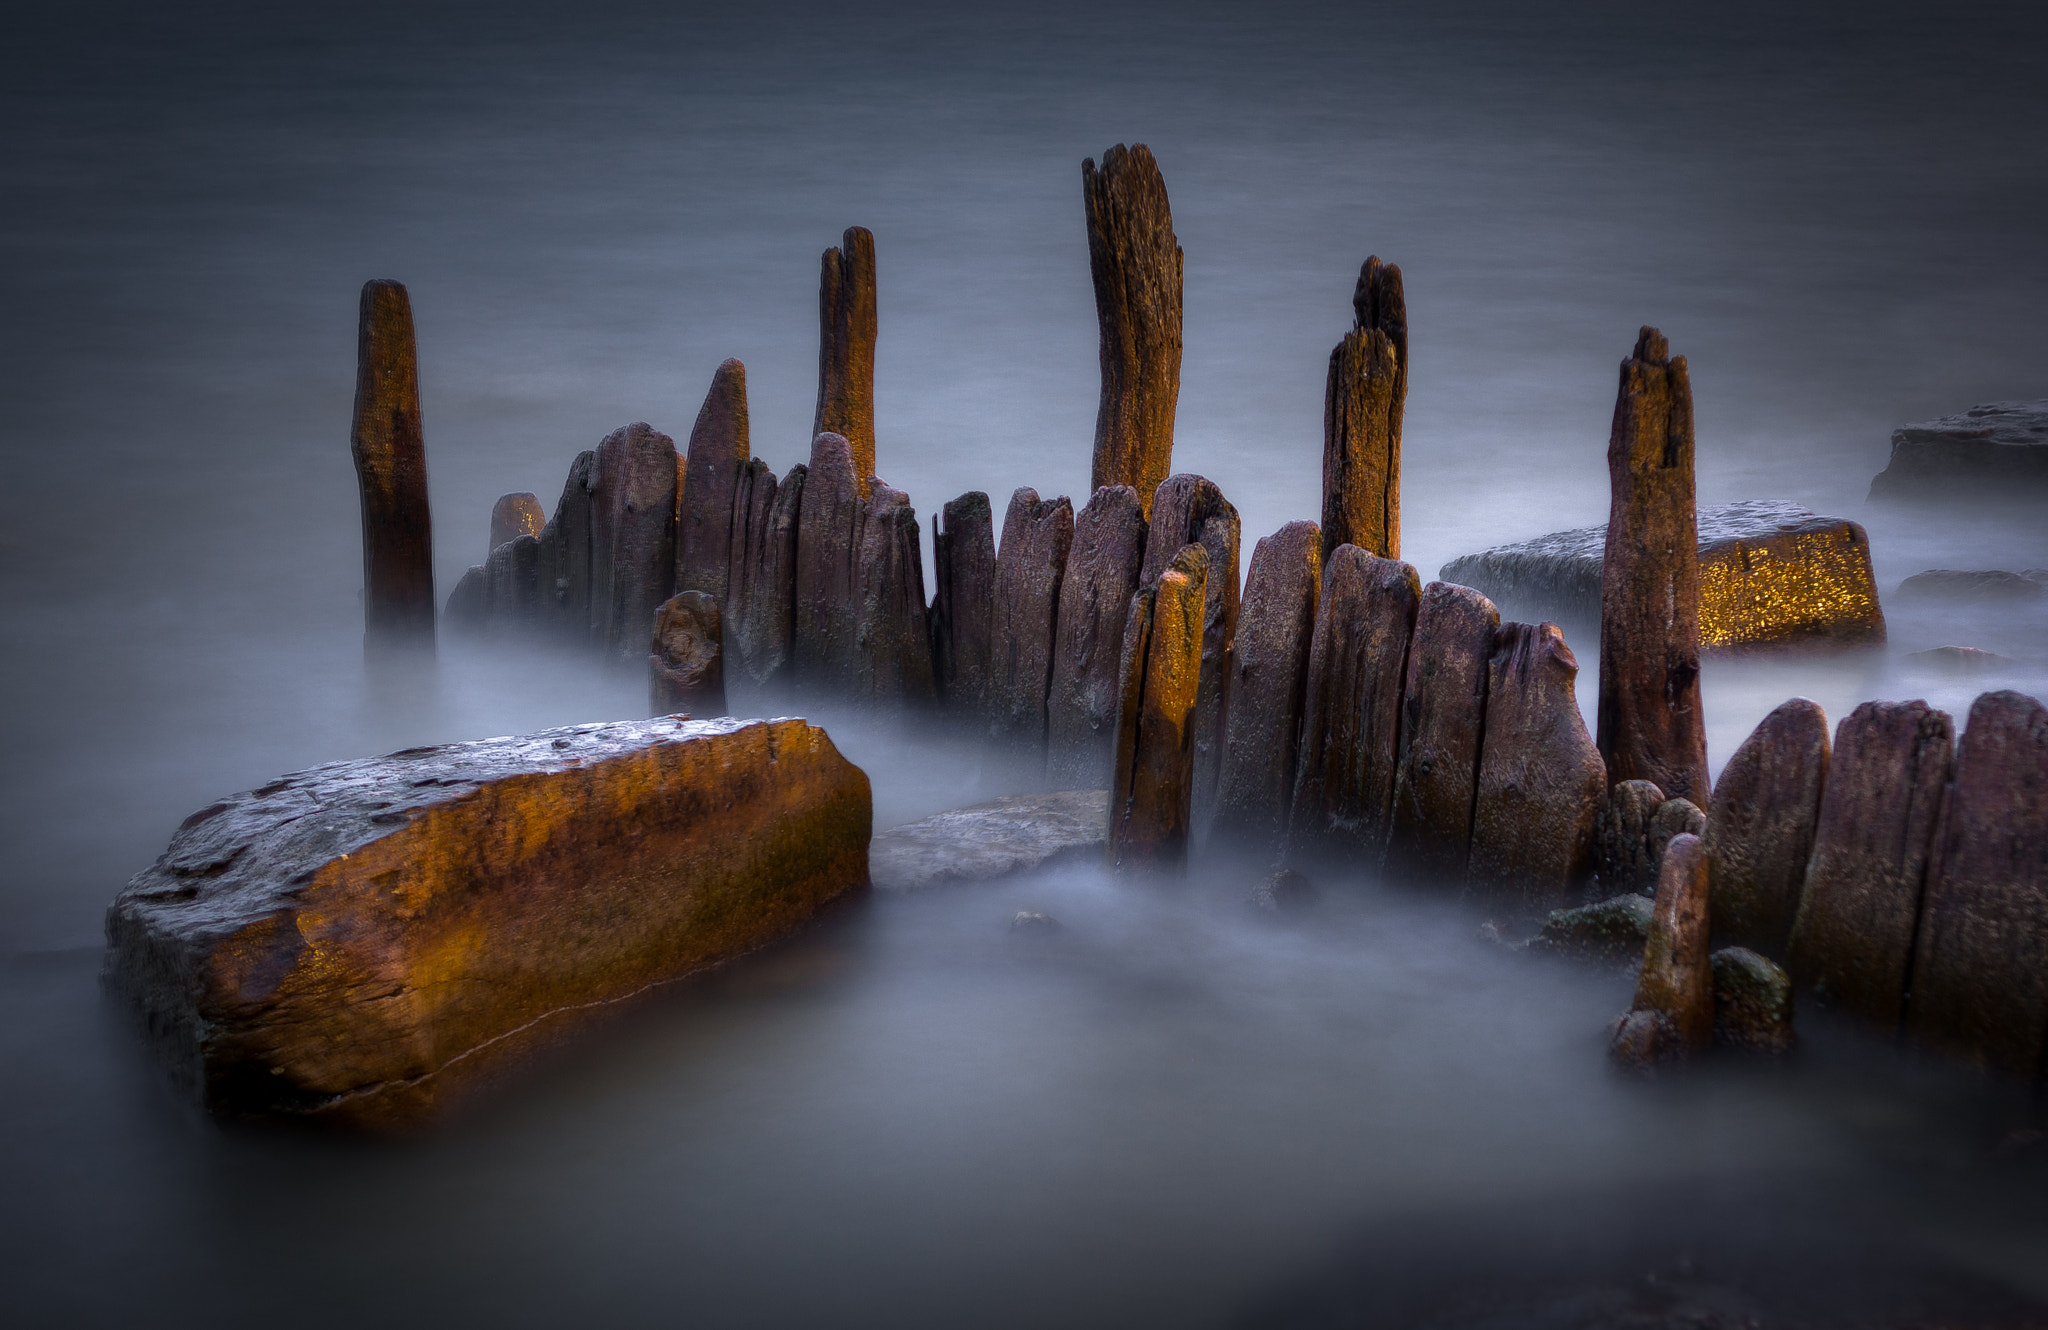 Photograph The Old Pier by Brian Behling on 500px